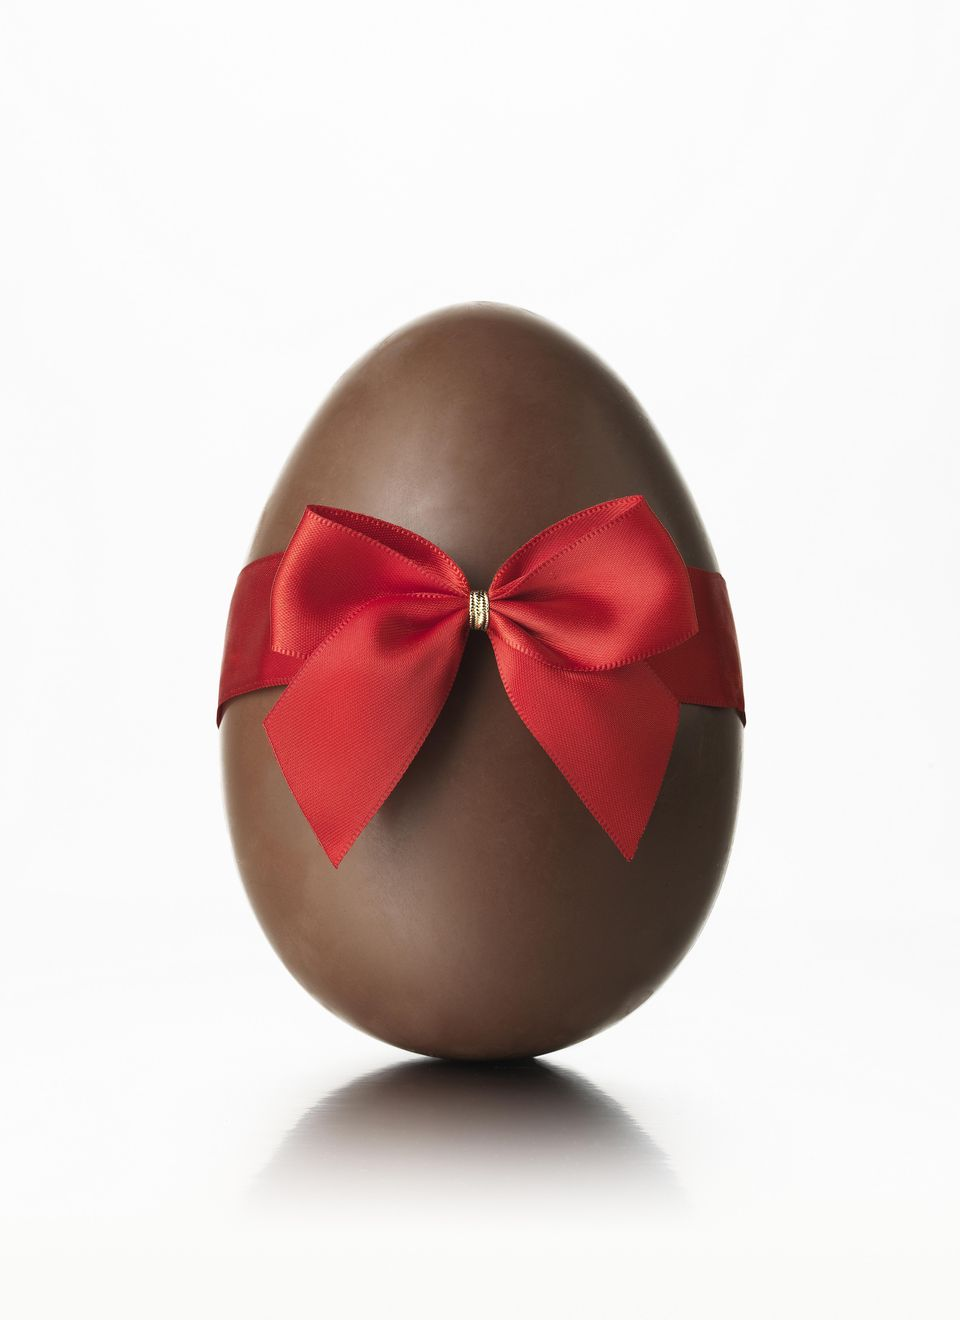 A solid, chocolate egg